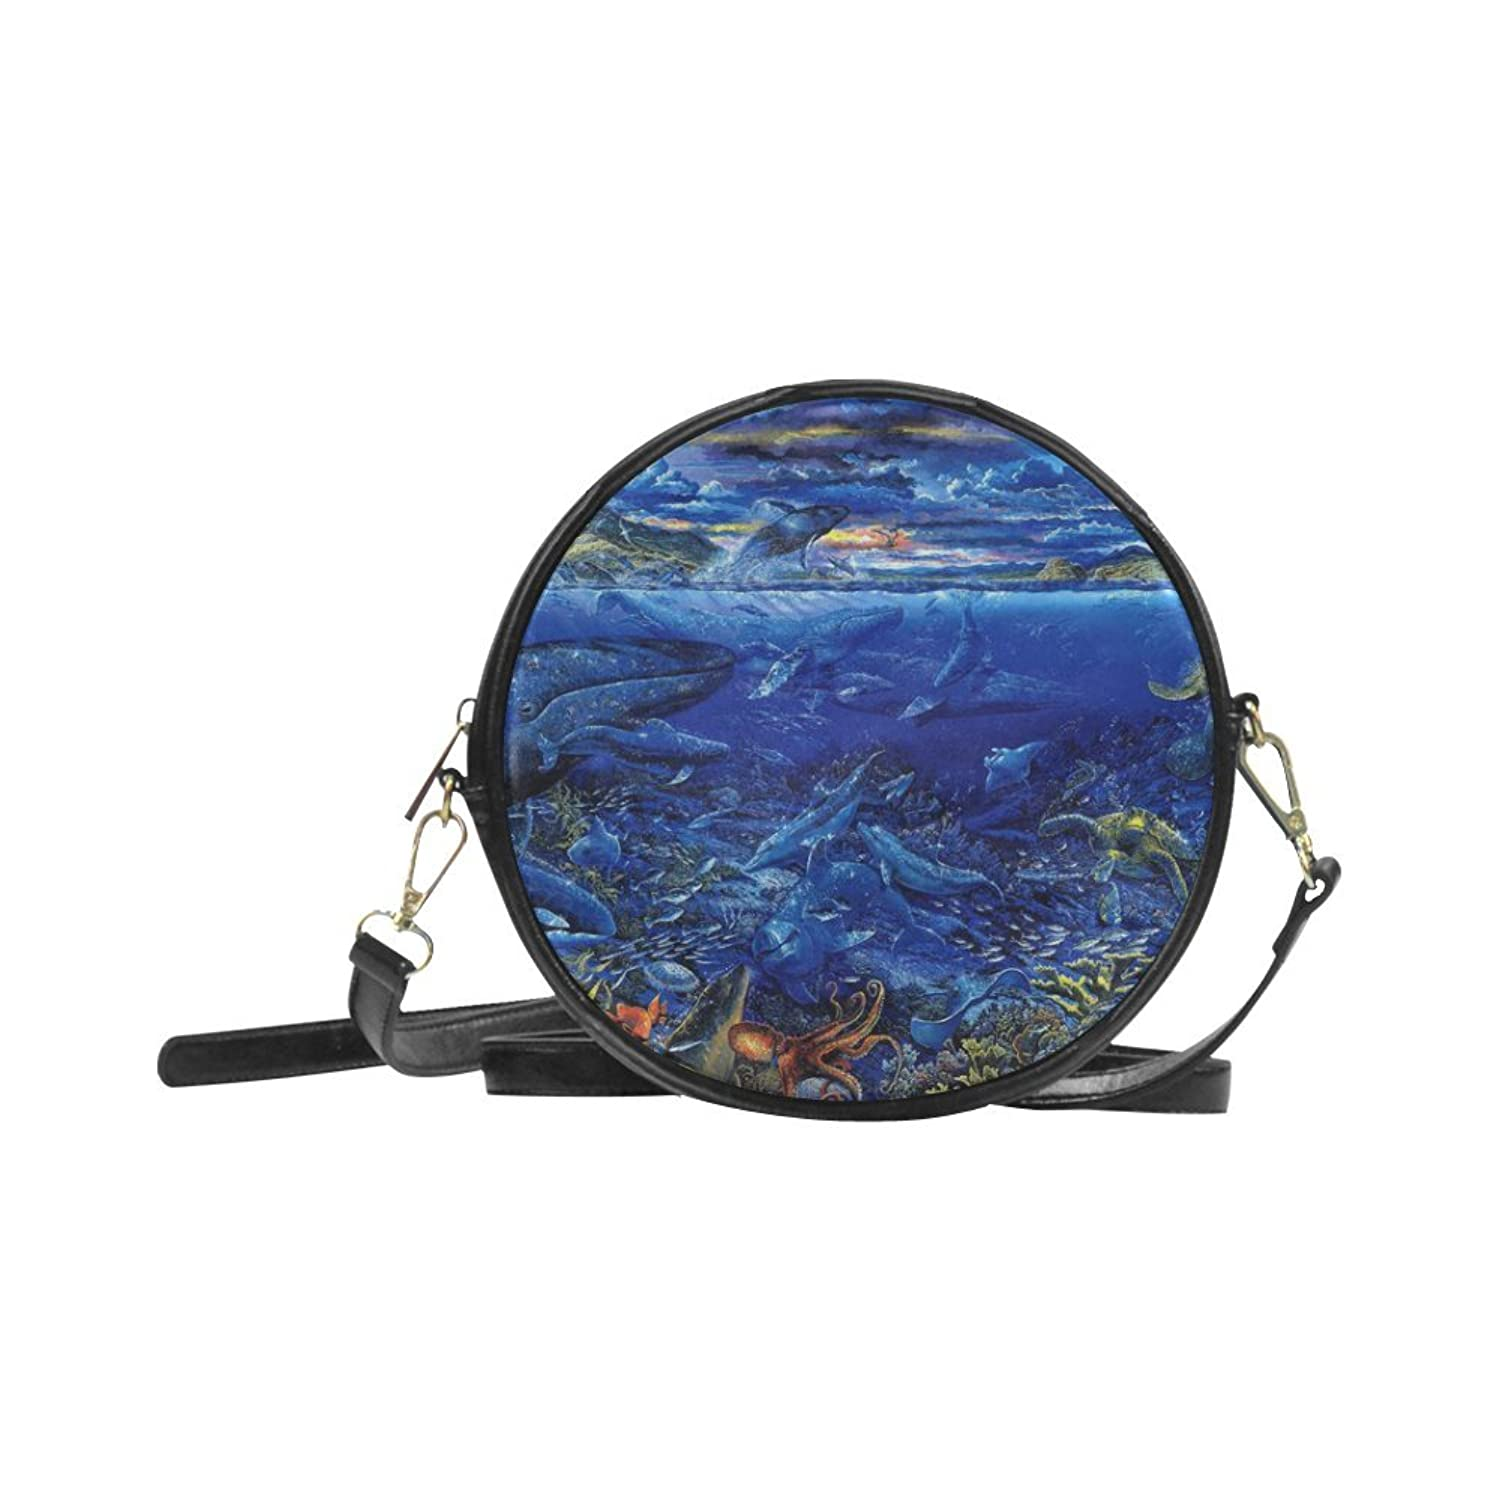 meincare Women's Sealife Underwater PU leather Round Messenger Bag Shoulder Bag